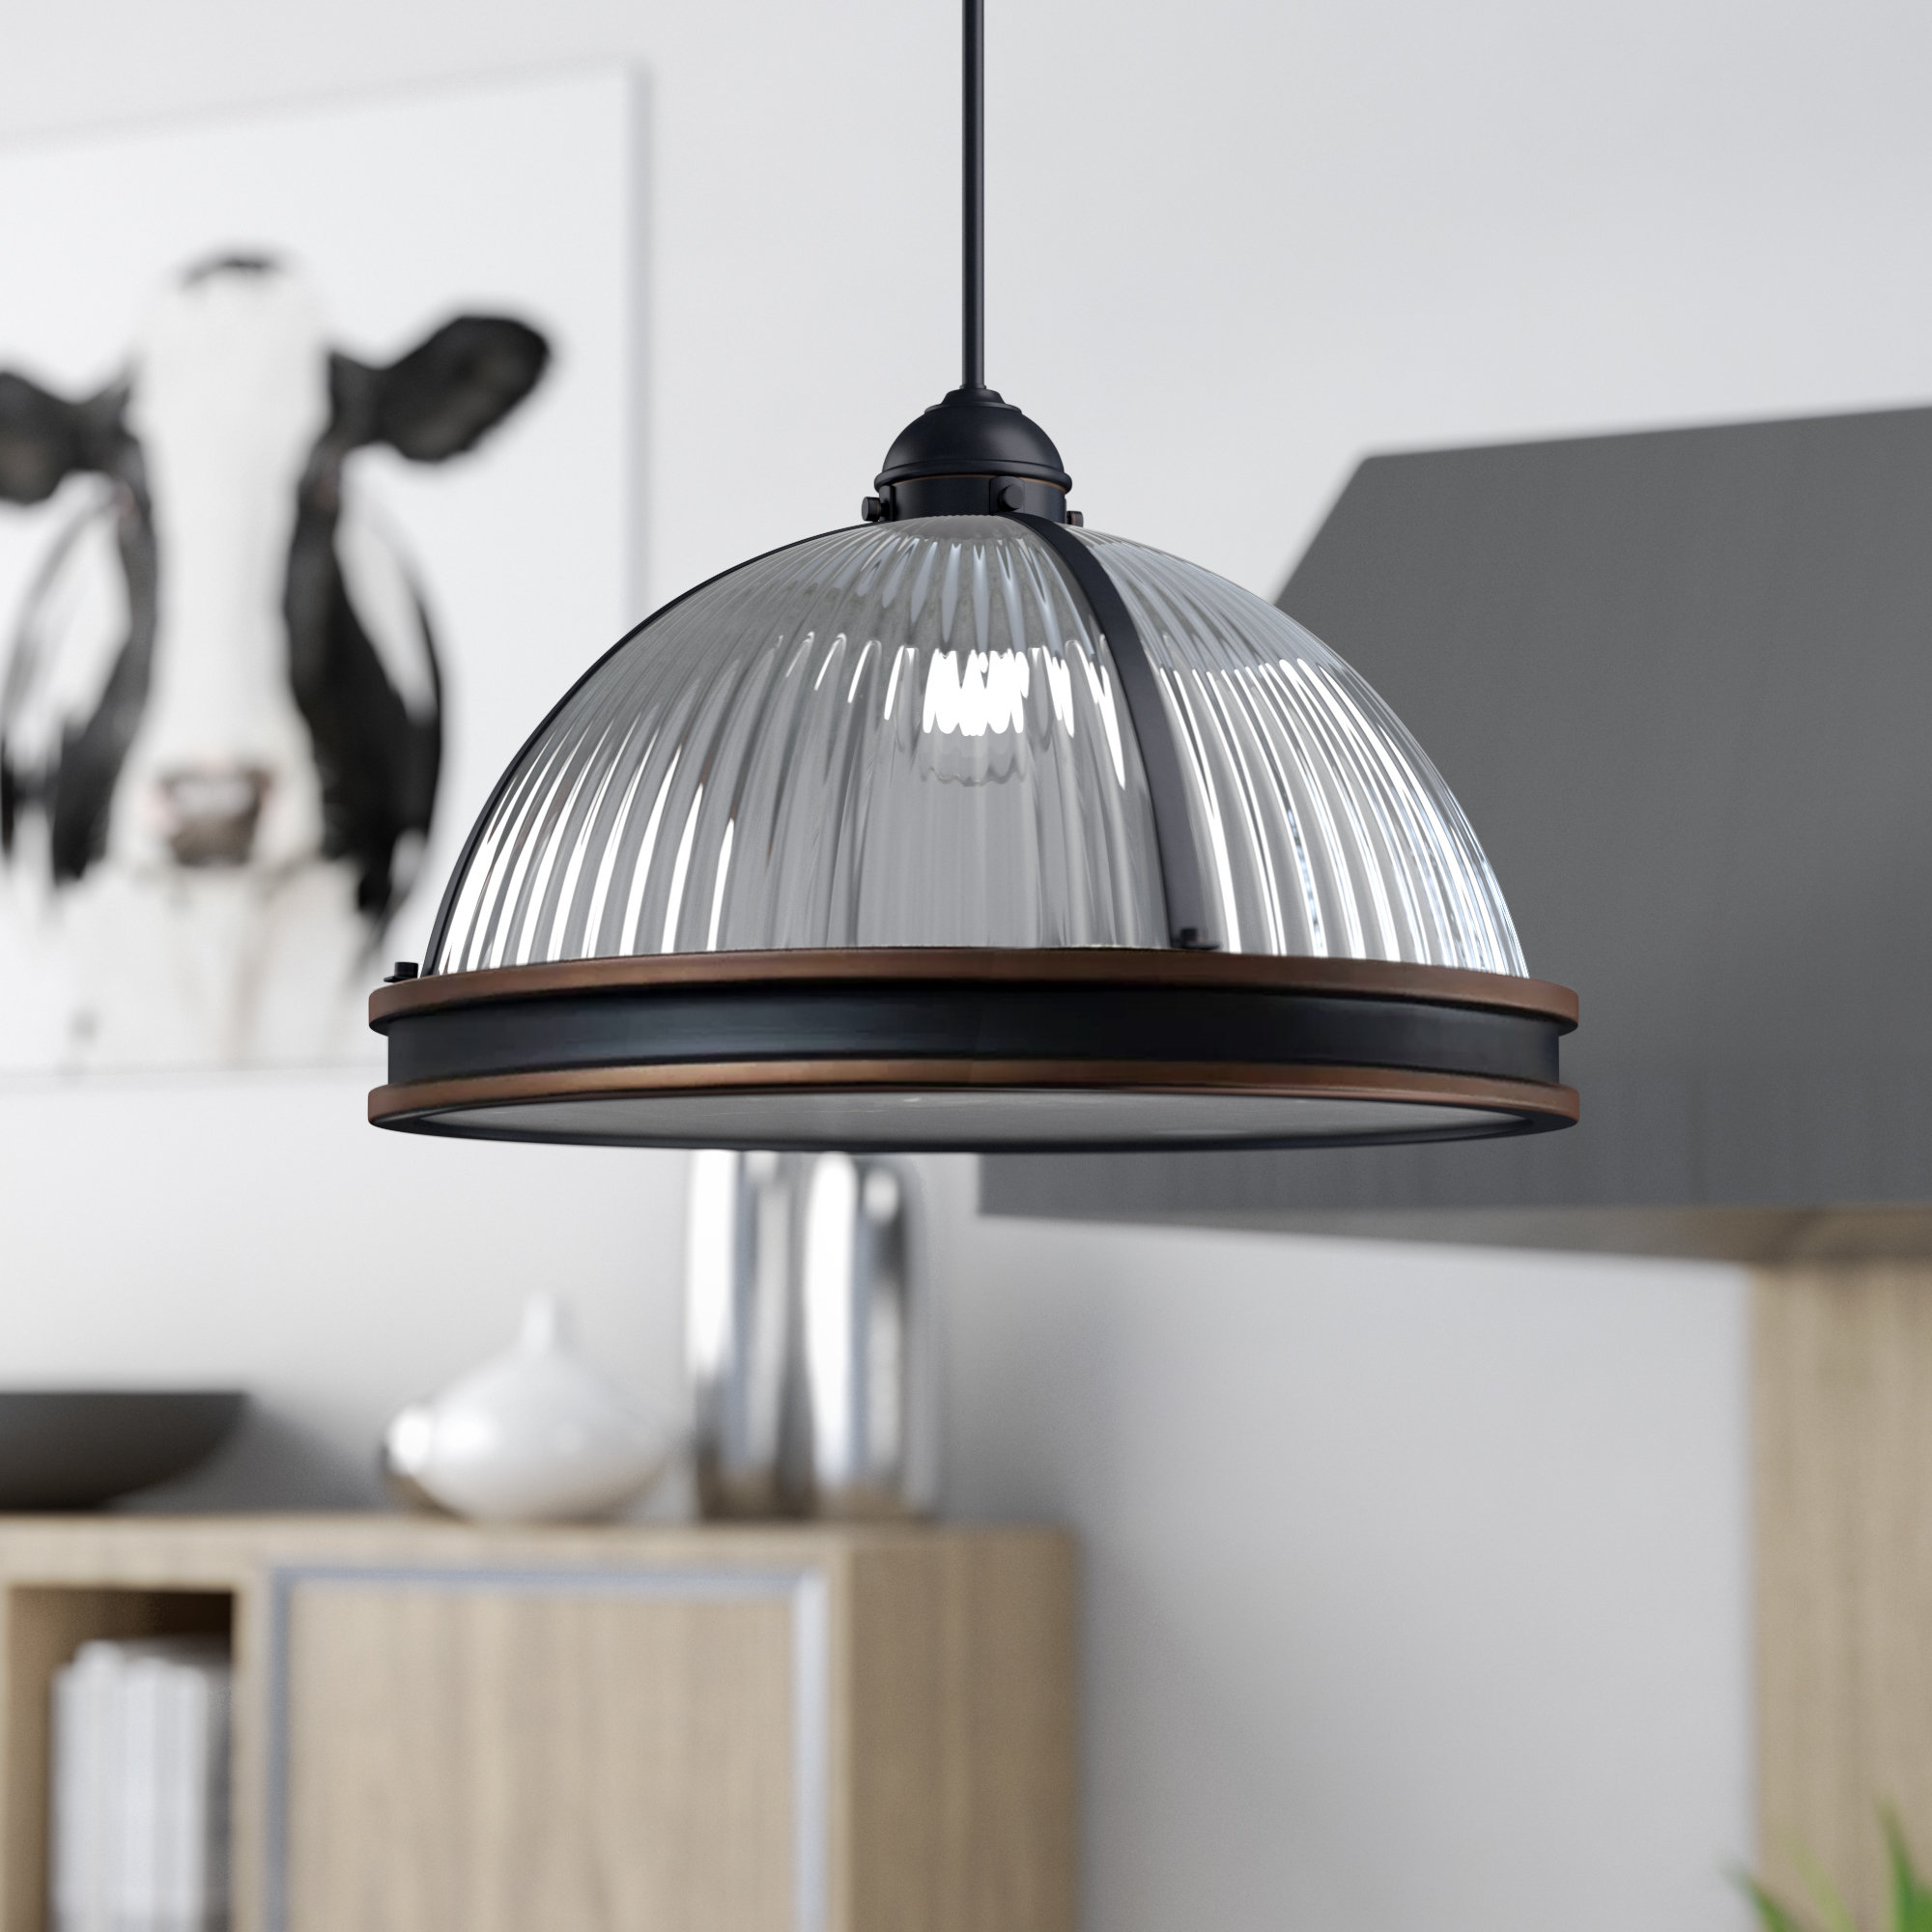 2019 Amara 3 Light Dome Pendants With Palisade 3 Light Dome Pendant (View 9 of 25)